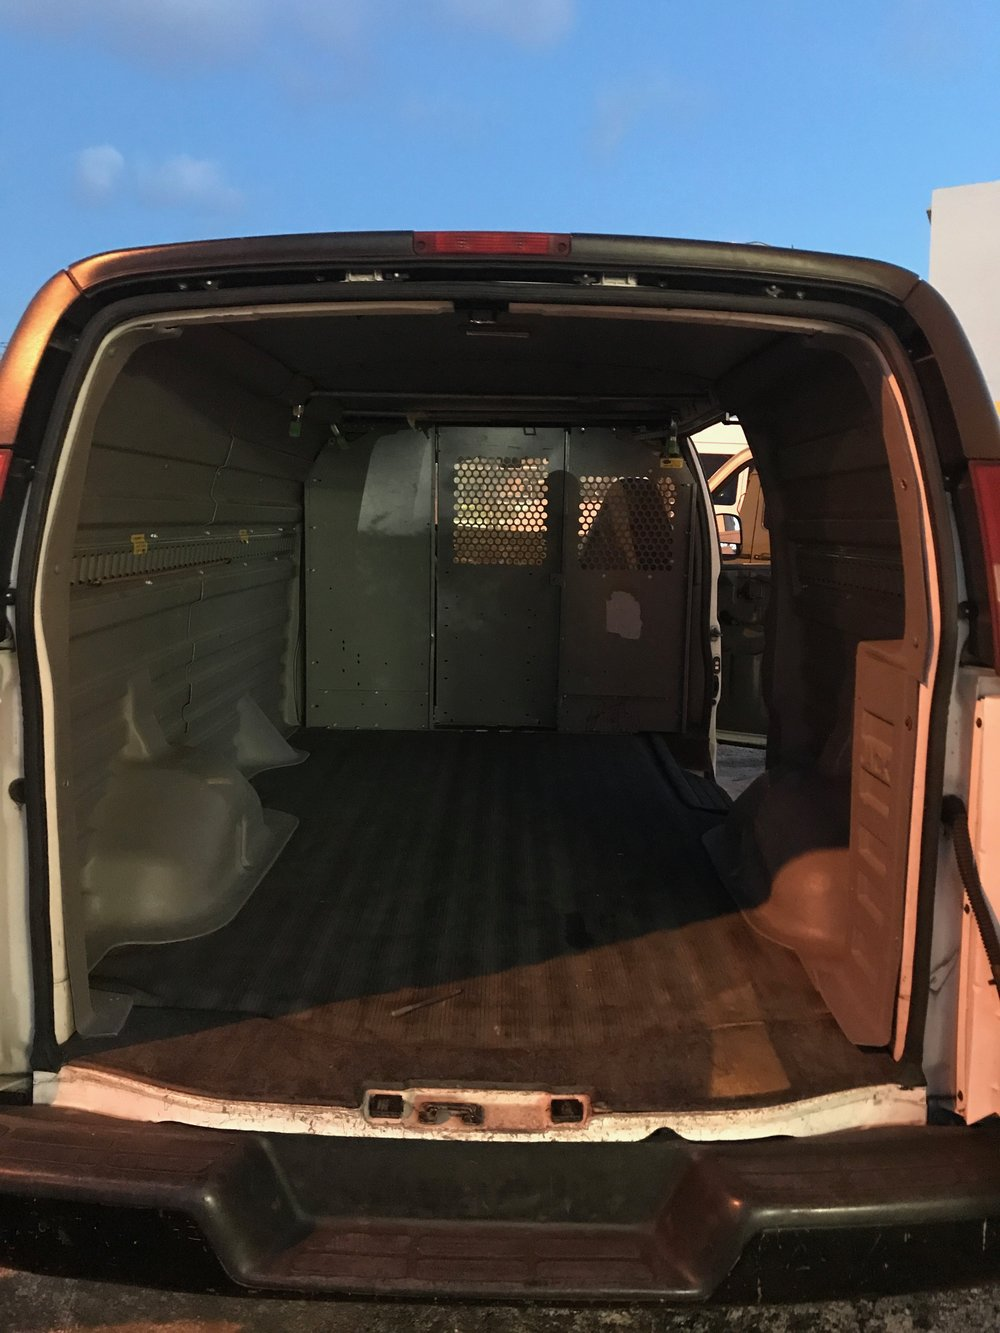 the inside of our 9 year old van, taking it off the courier service fleet and giving it a last hoorah of road trips.